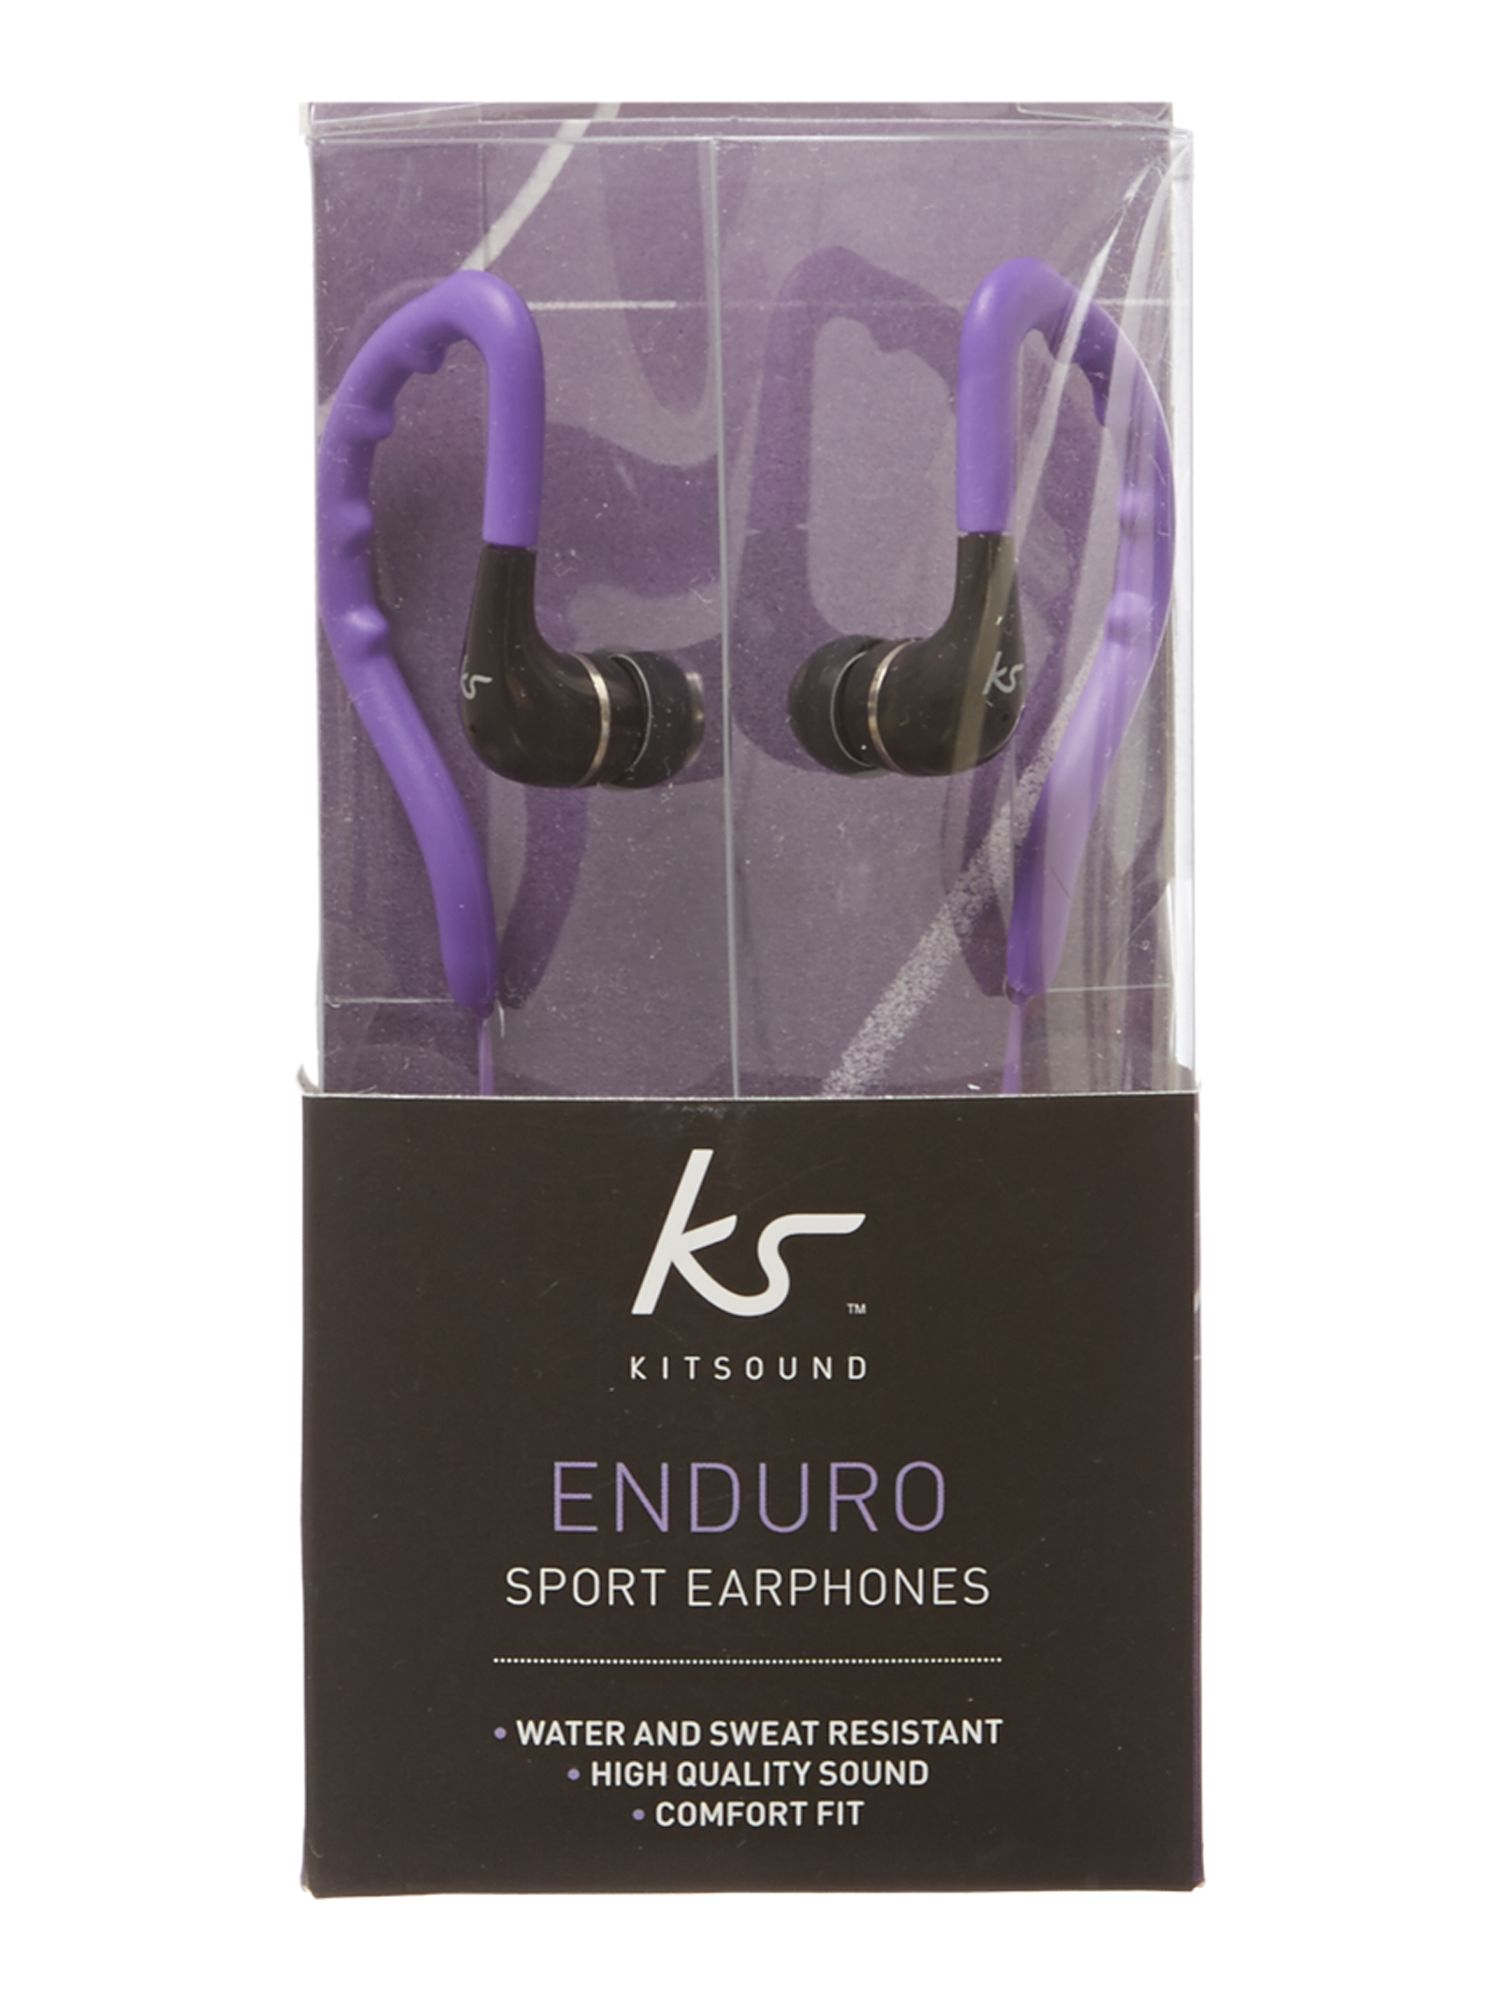 Enduro sports headphones